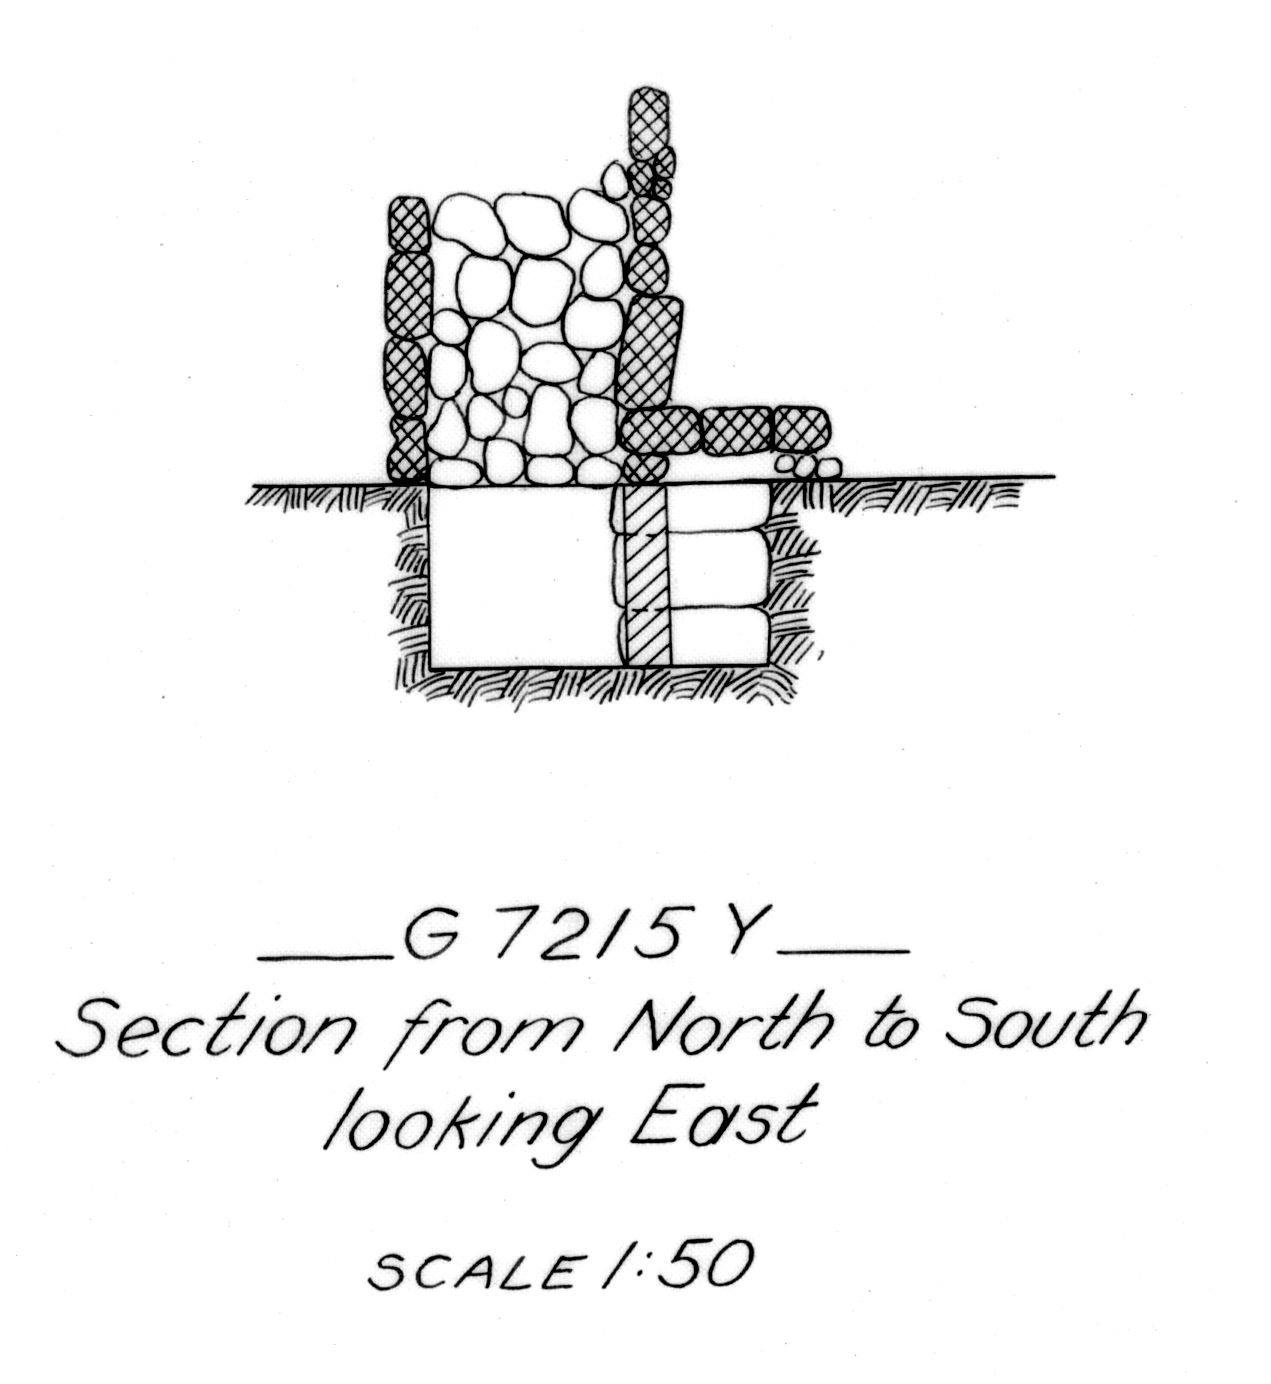 Maps and plans: G 7215, Shaft Y